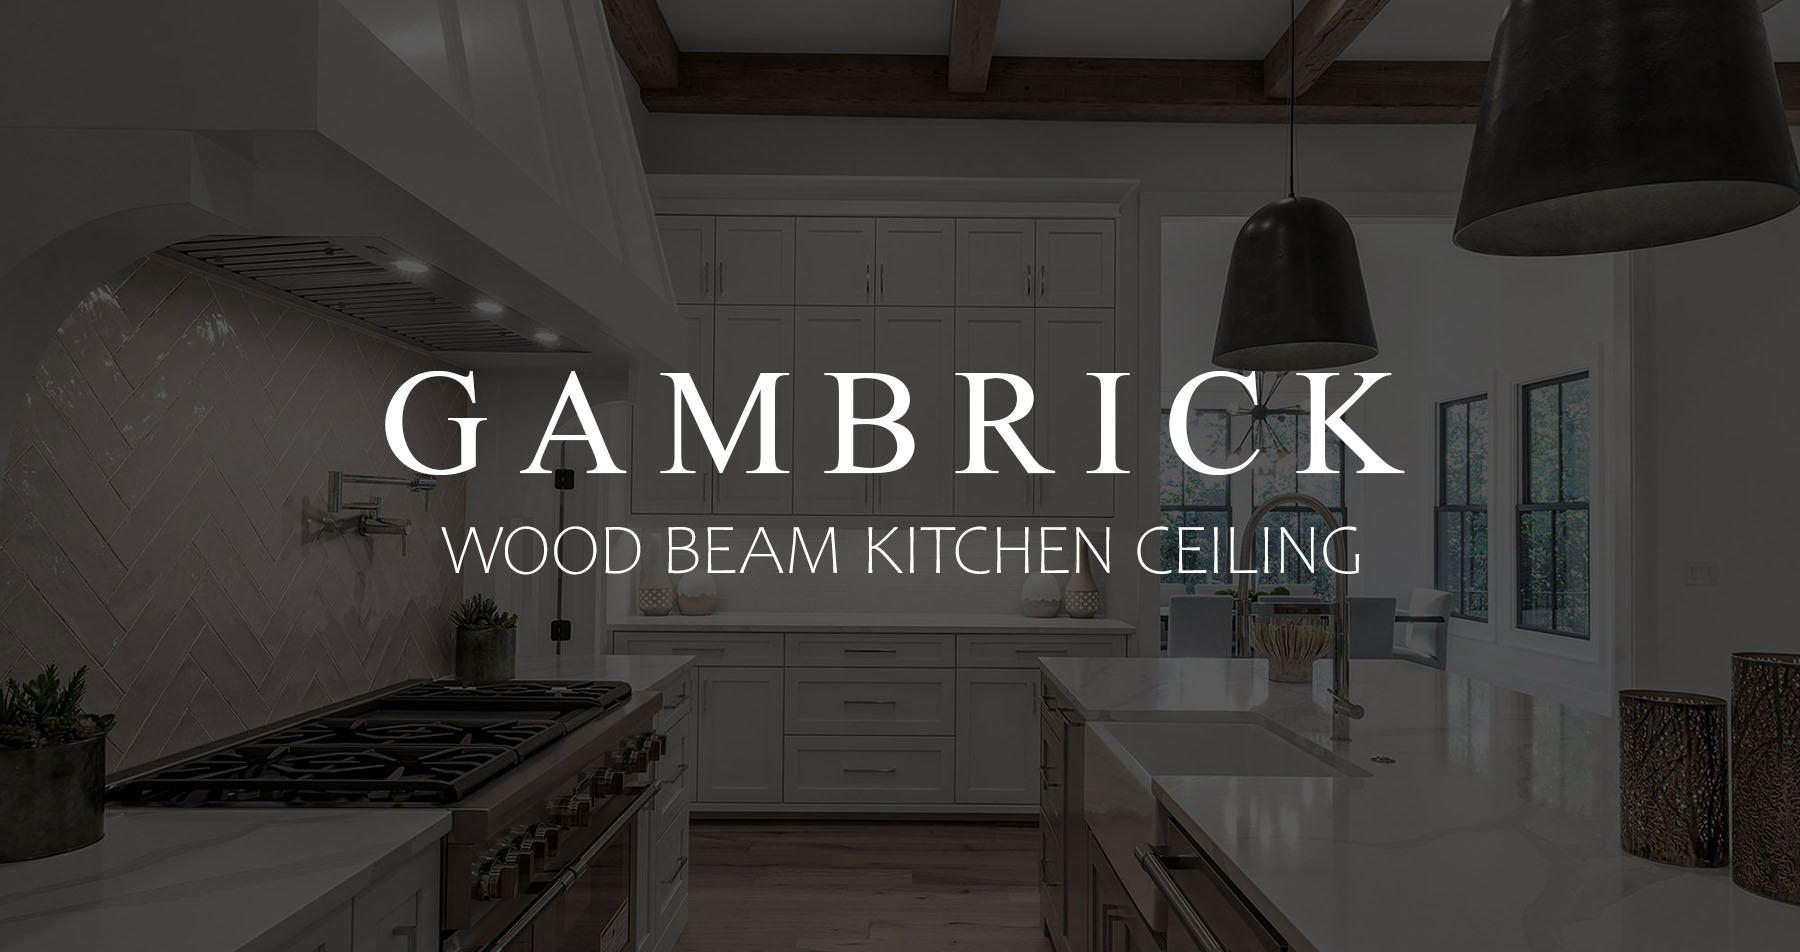 wood beam kitchen ceiling banner pic